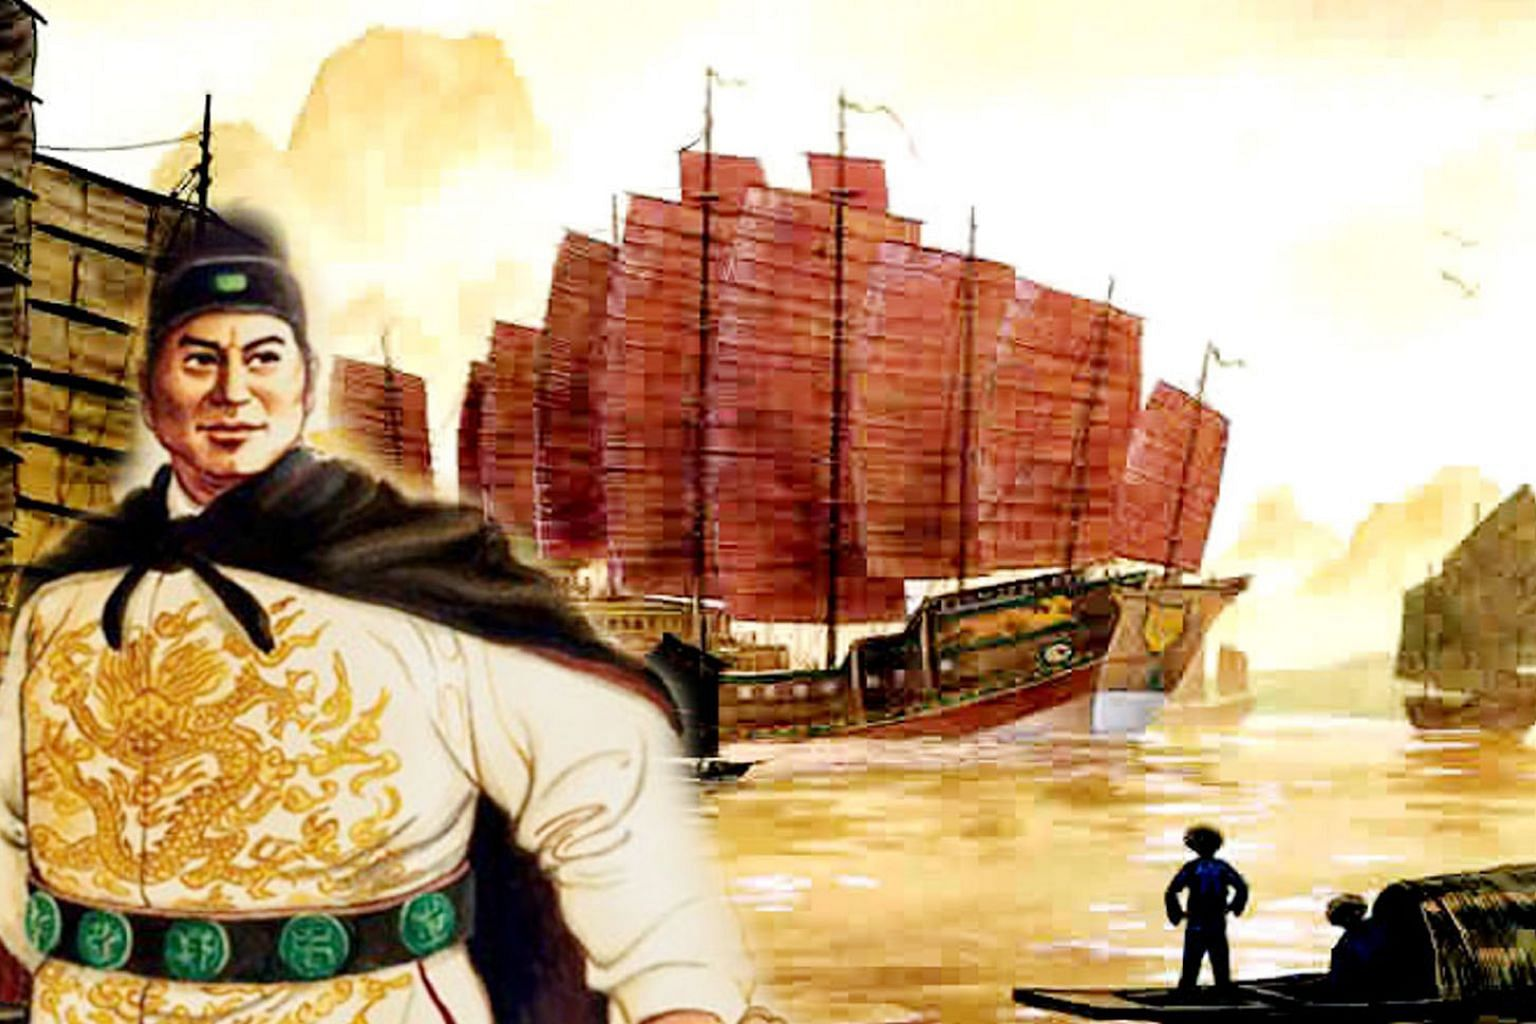 Following an imperial decree to spread China's knowledge and goodwill, Admiral Zheng He undertook seven expeditions between 1405 and 1433, sailing as far west as the Horn of Africa. As well as commanding these epic voyages, he also took on the roles